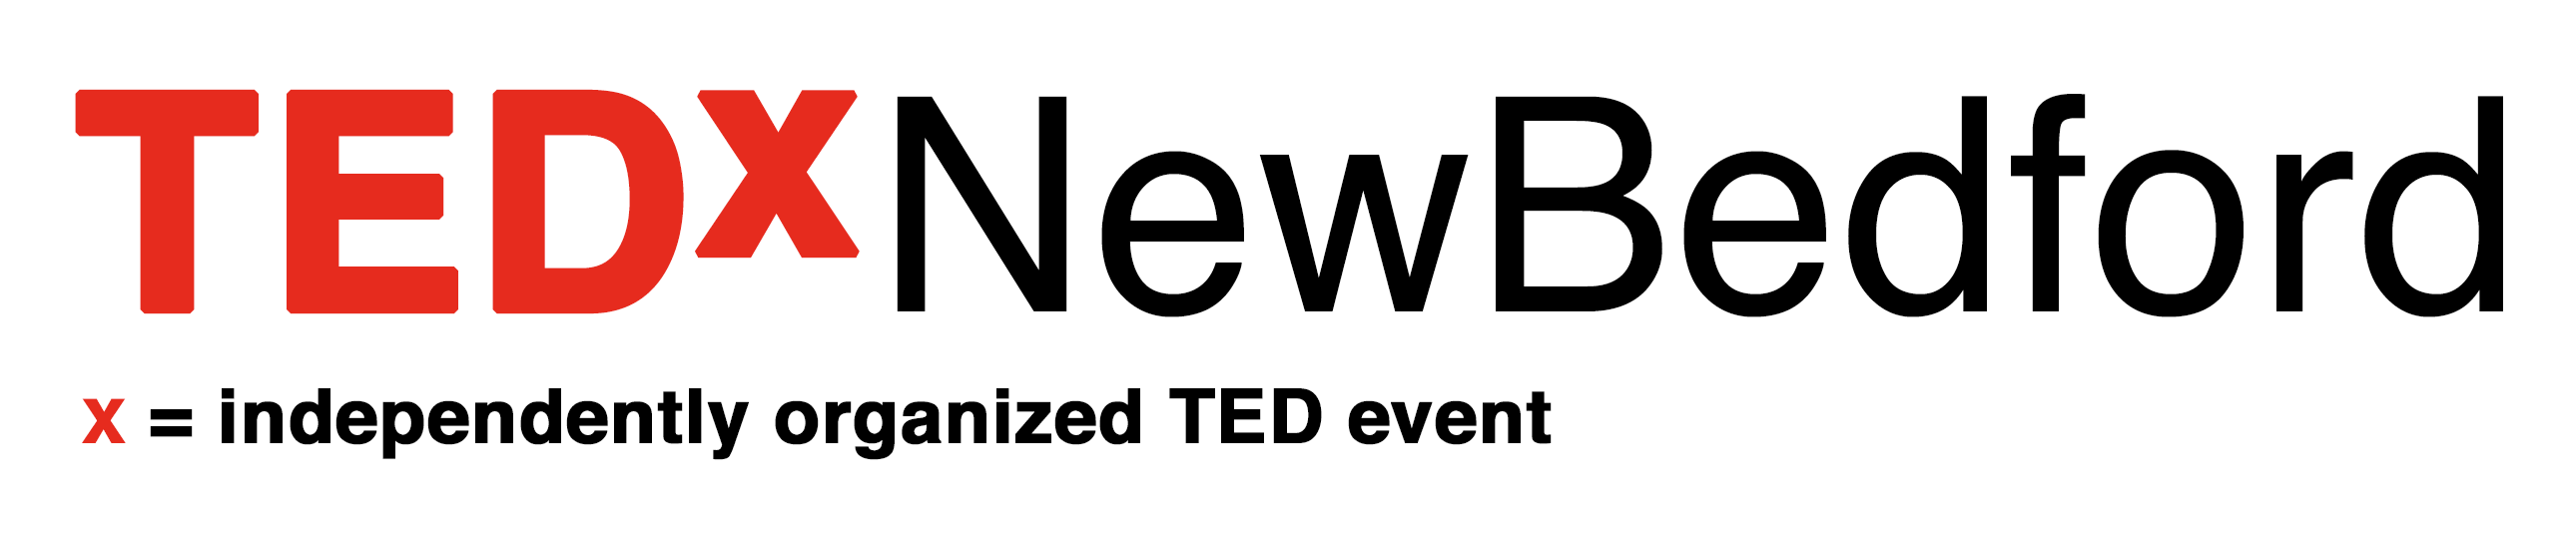 TEDxNewBedford is an annual TEDx event that is held in New Bedford, Massachusetts.